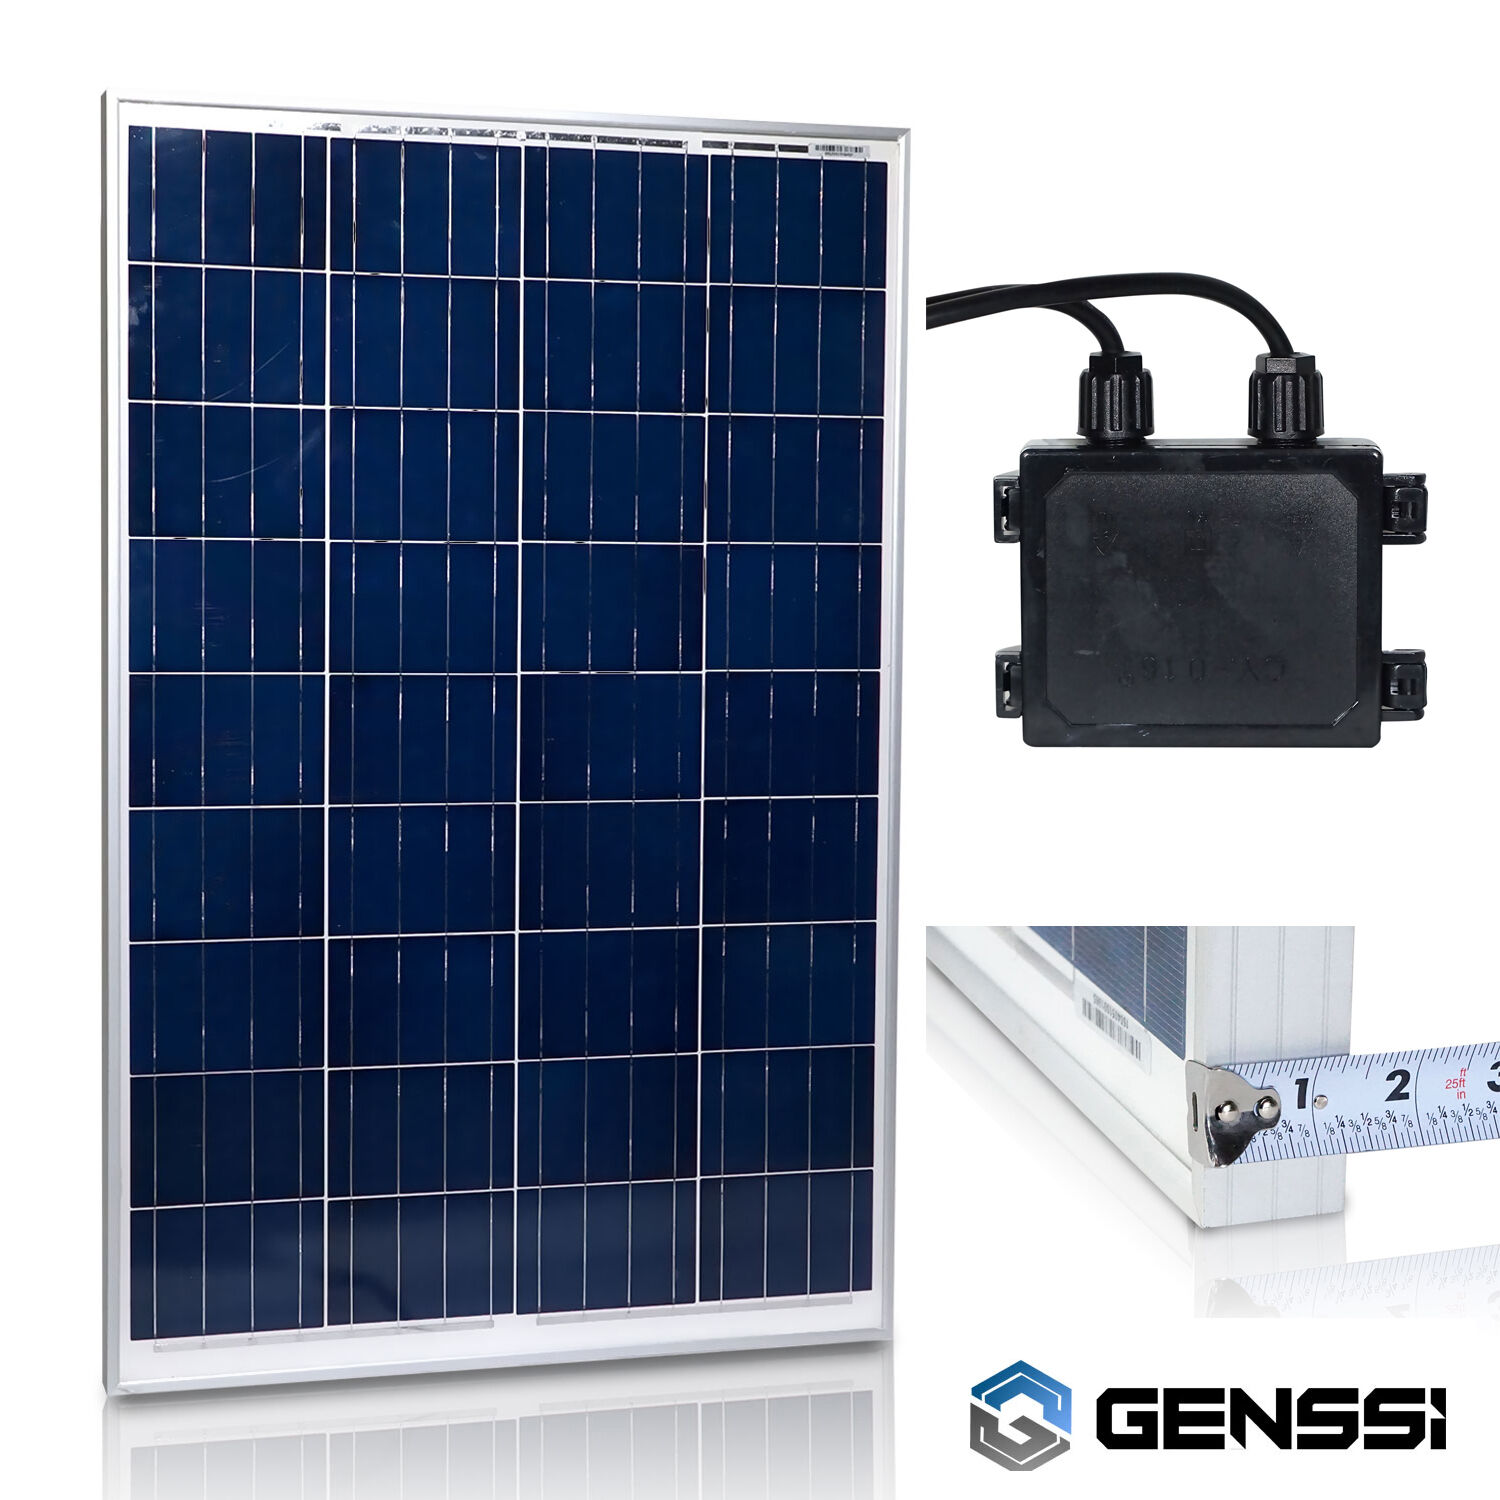 1KW 500W 400W 300W 200W 100W Solar Panel for 12V/24V Home RV